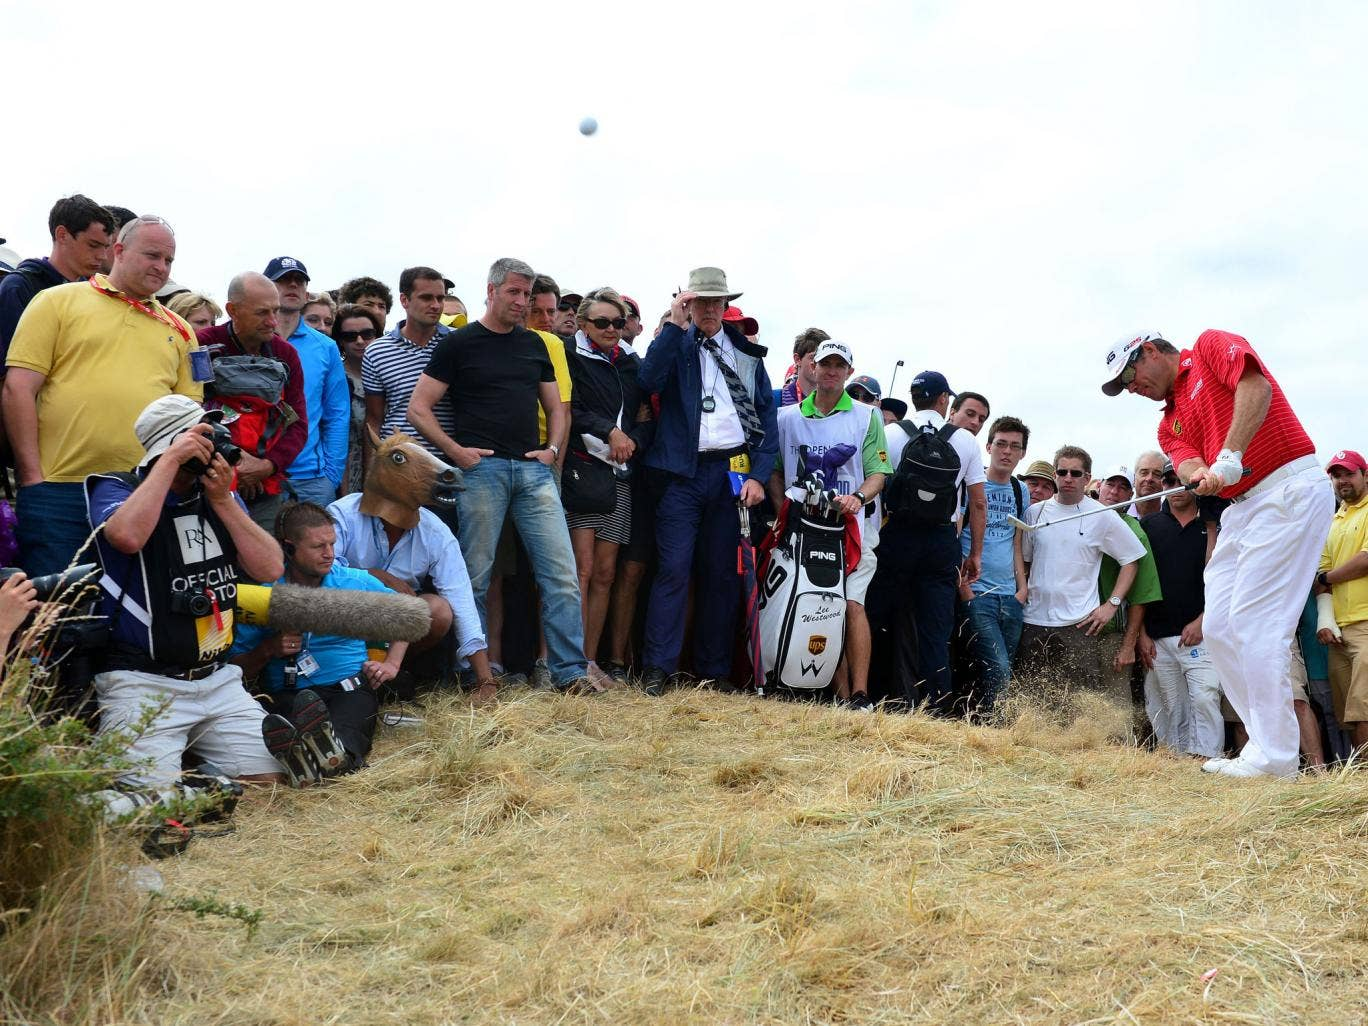 Lee Westwood plays out of the rough on his way to a four-over-par final round as he slipped from first to a tie for third